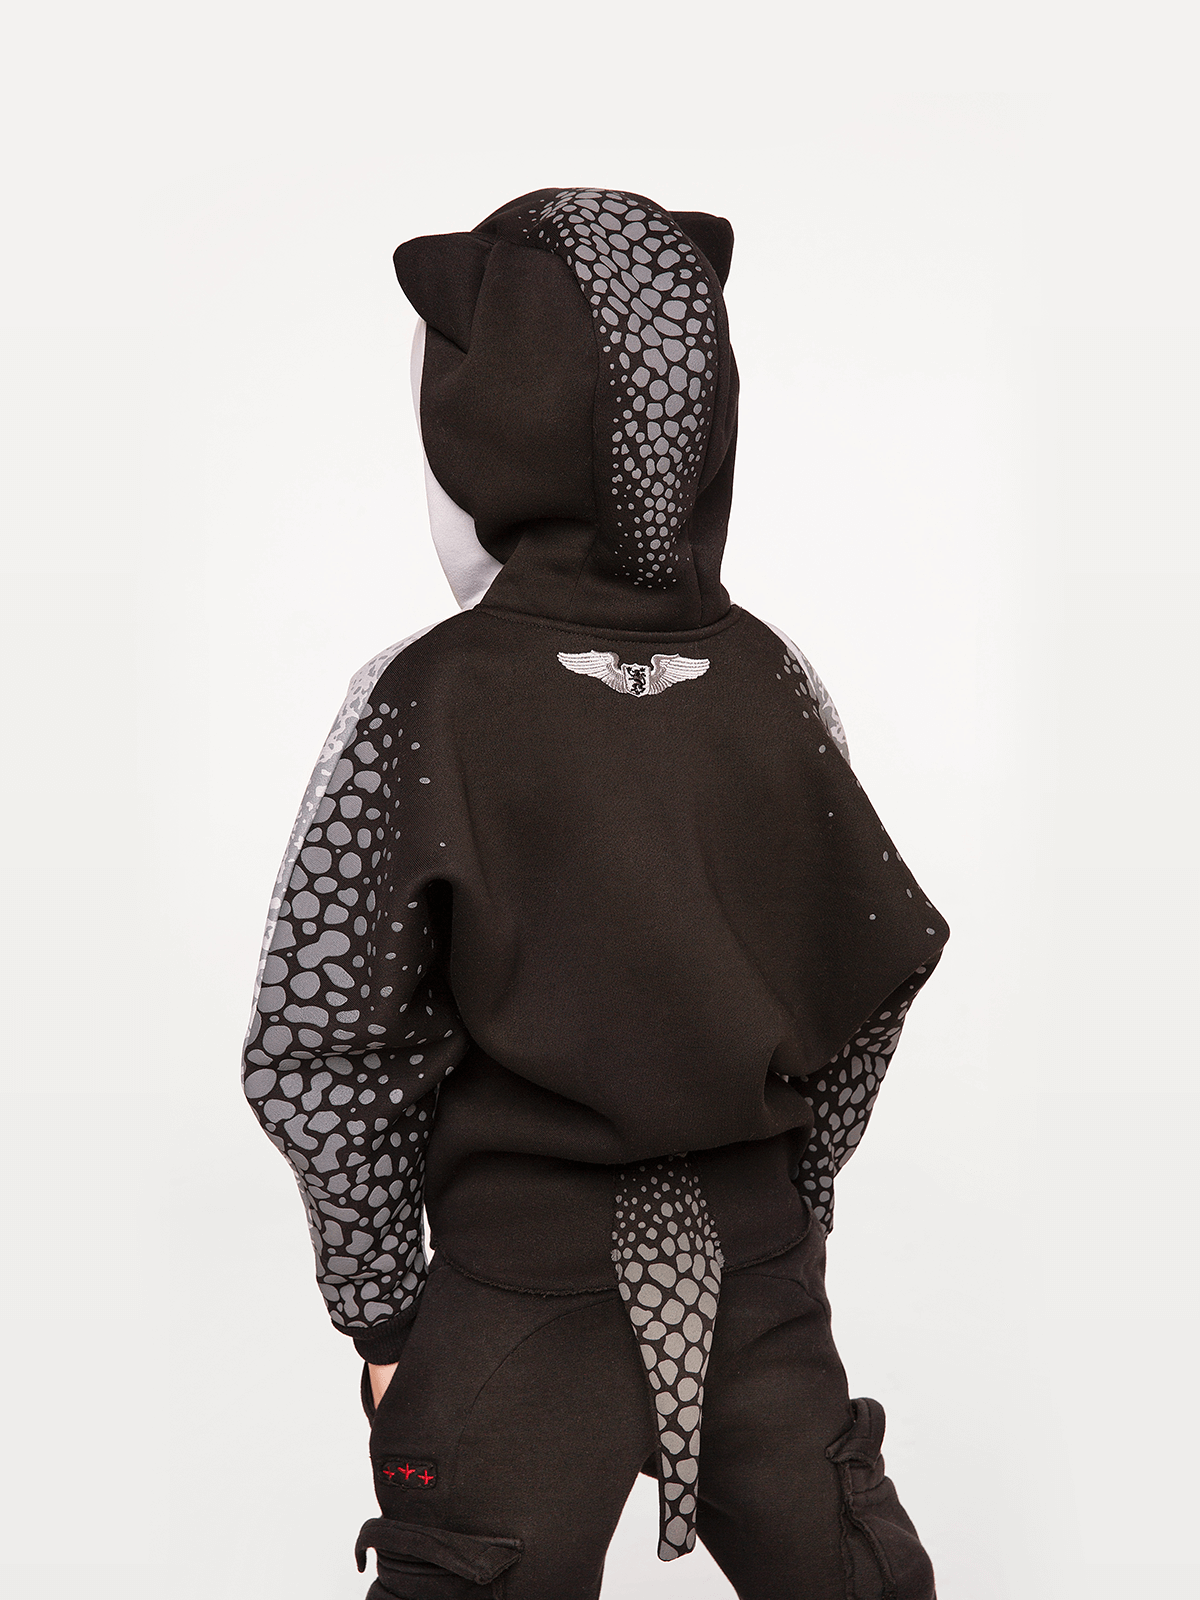 Kids Hoodie Stingray. Color gray.  Material of the hoodie – three-cord thread fabric: 77% cotton, 23% polyester.